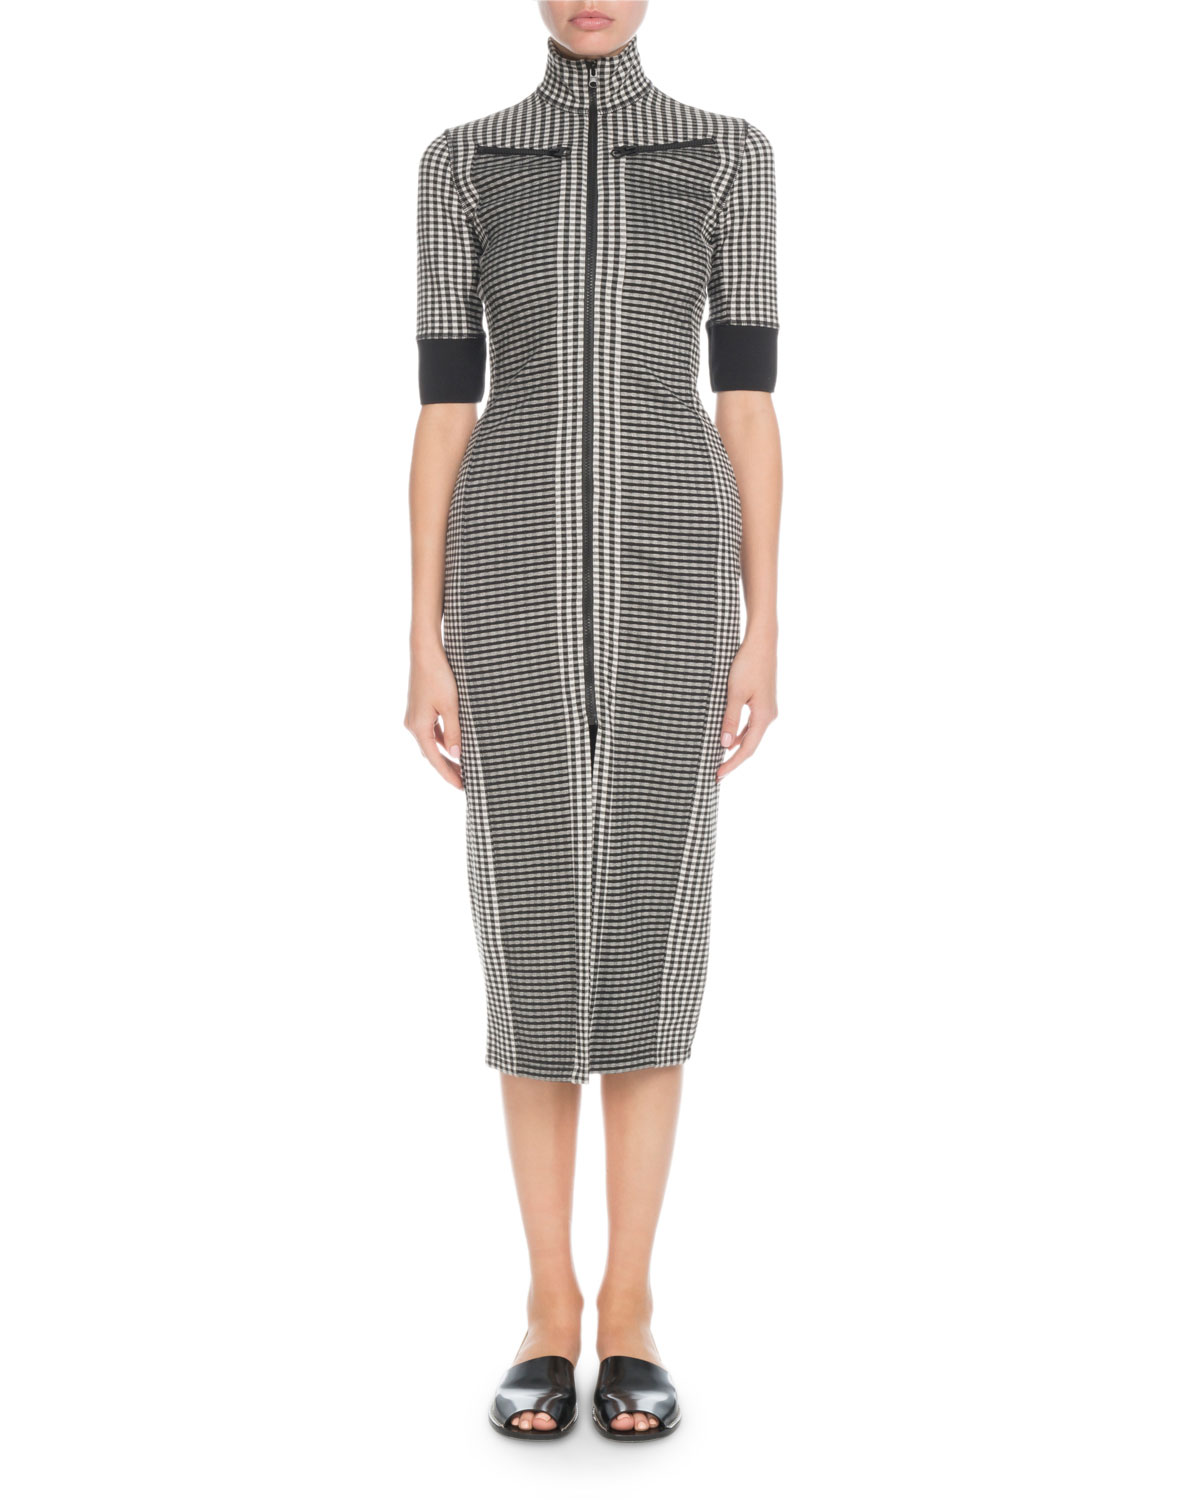 PSWL Fitted Check 3/4-Sleeve Zip-Front Dress in Black/White